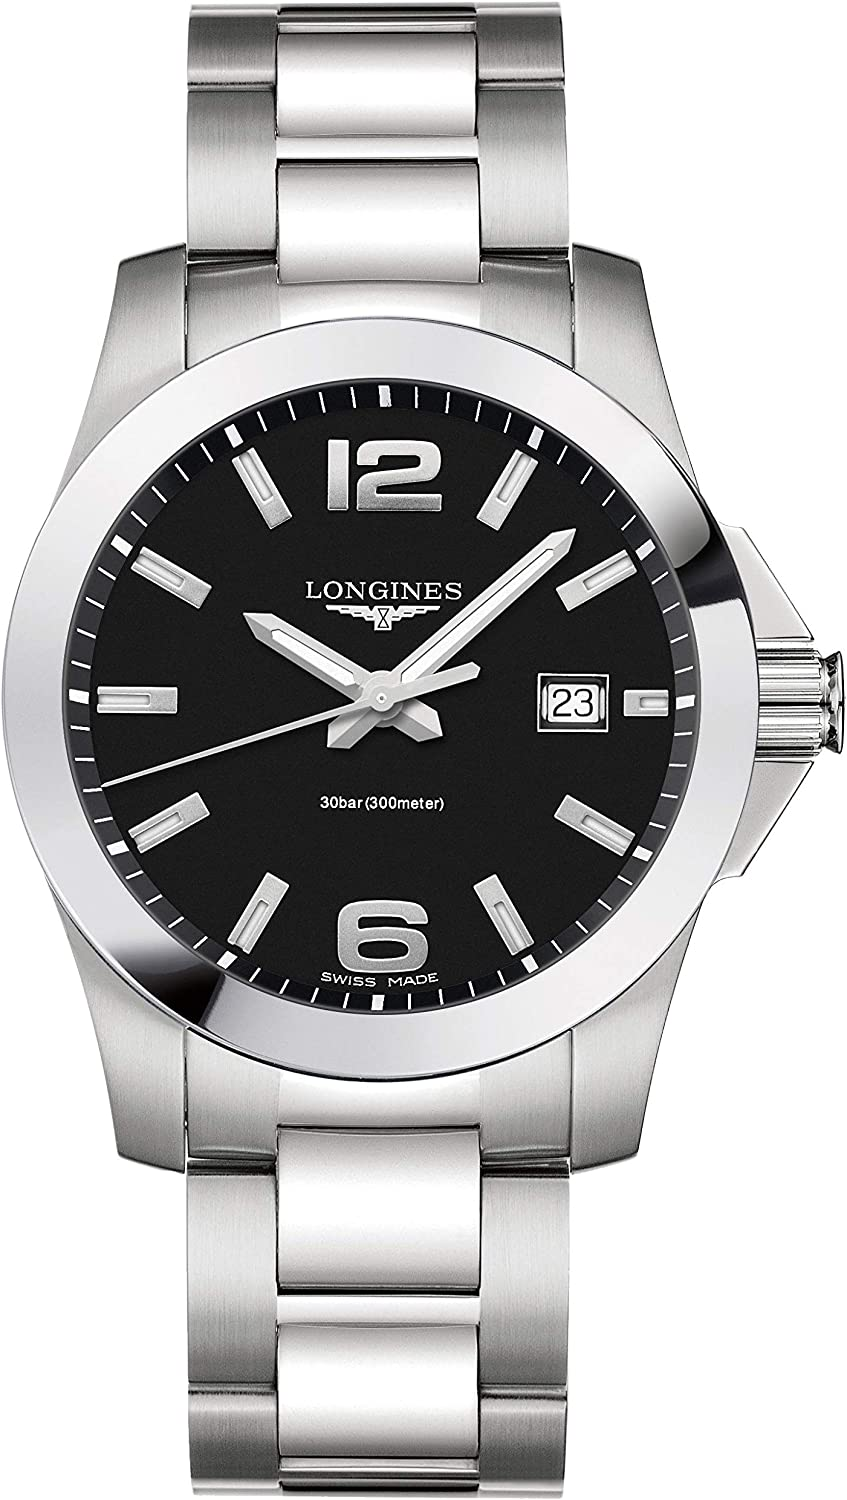 Longines San Francisco Mall Conquest L3.759.4.58.6 Challenge the lowest price of Japan ☆